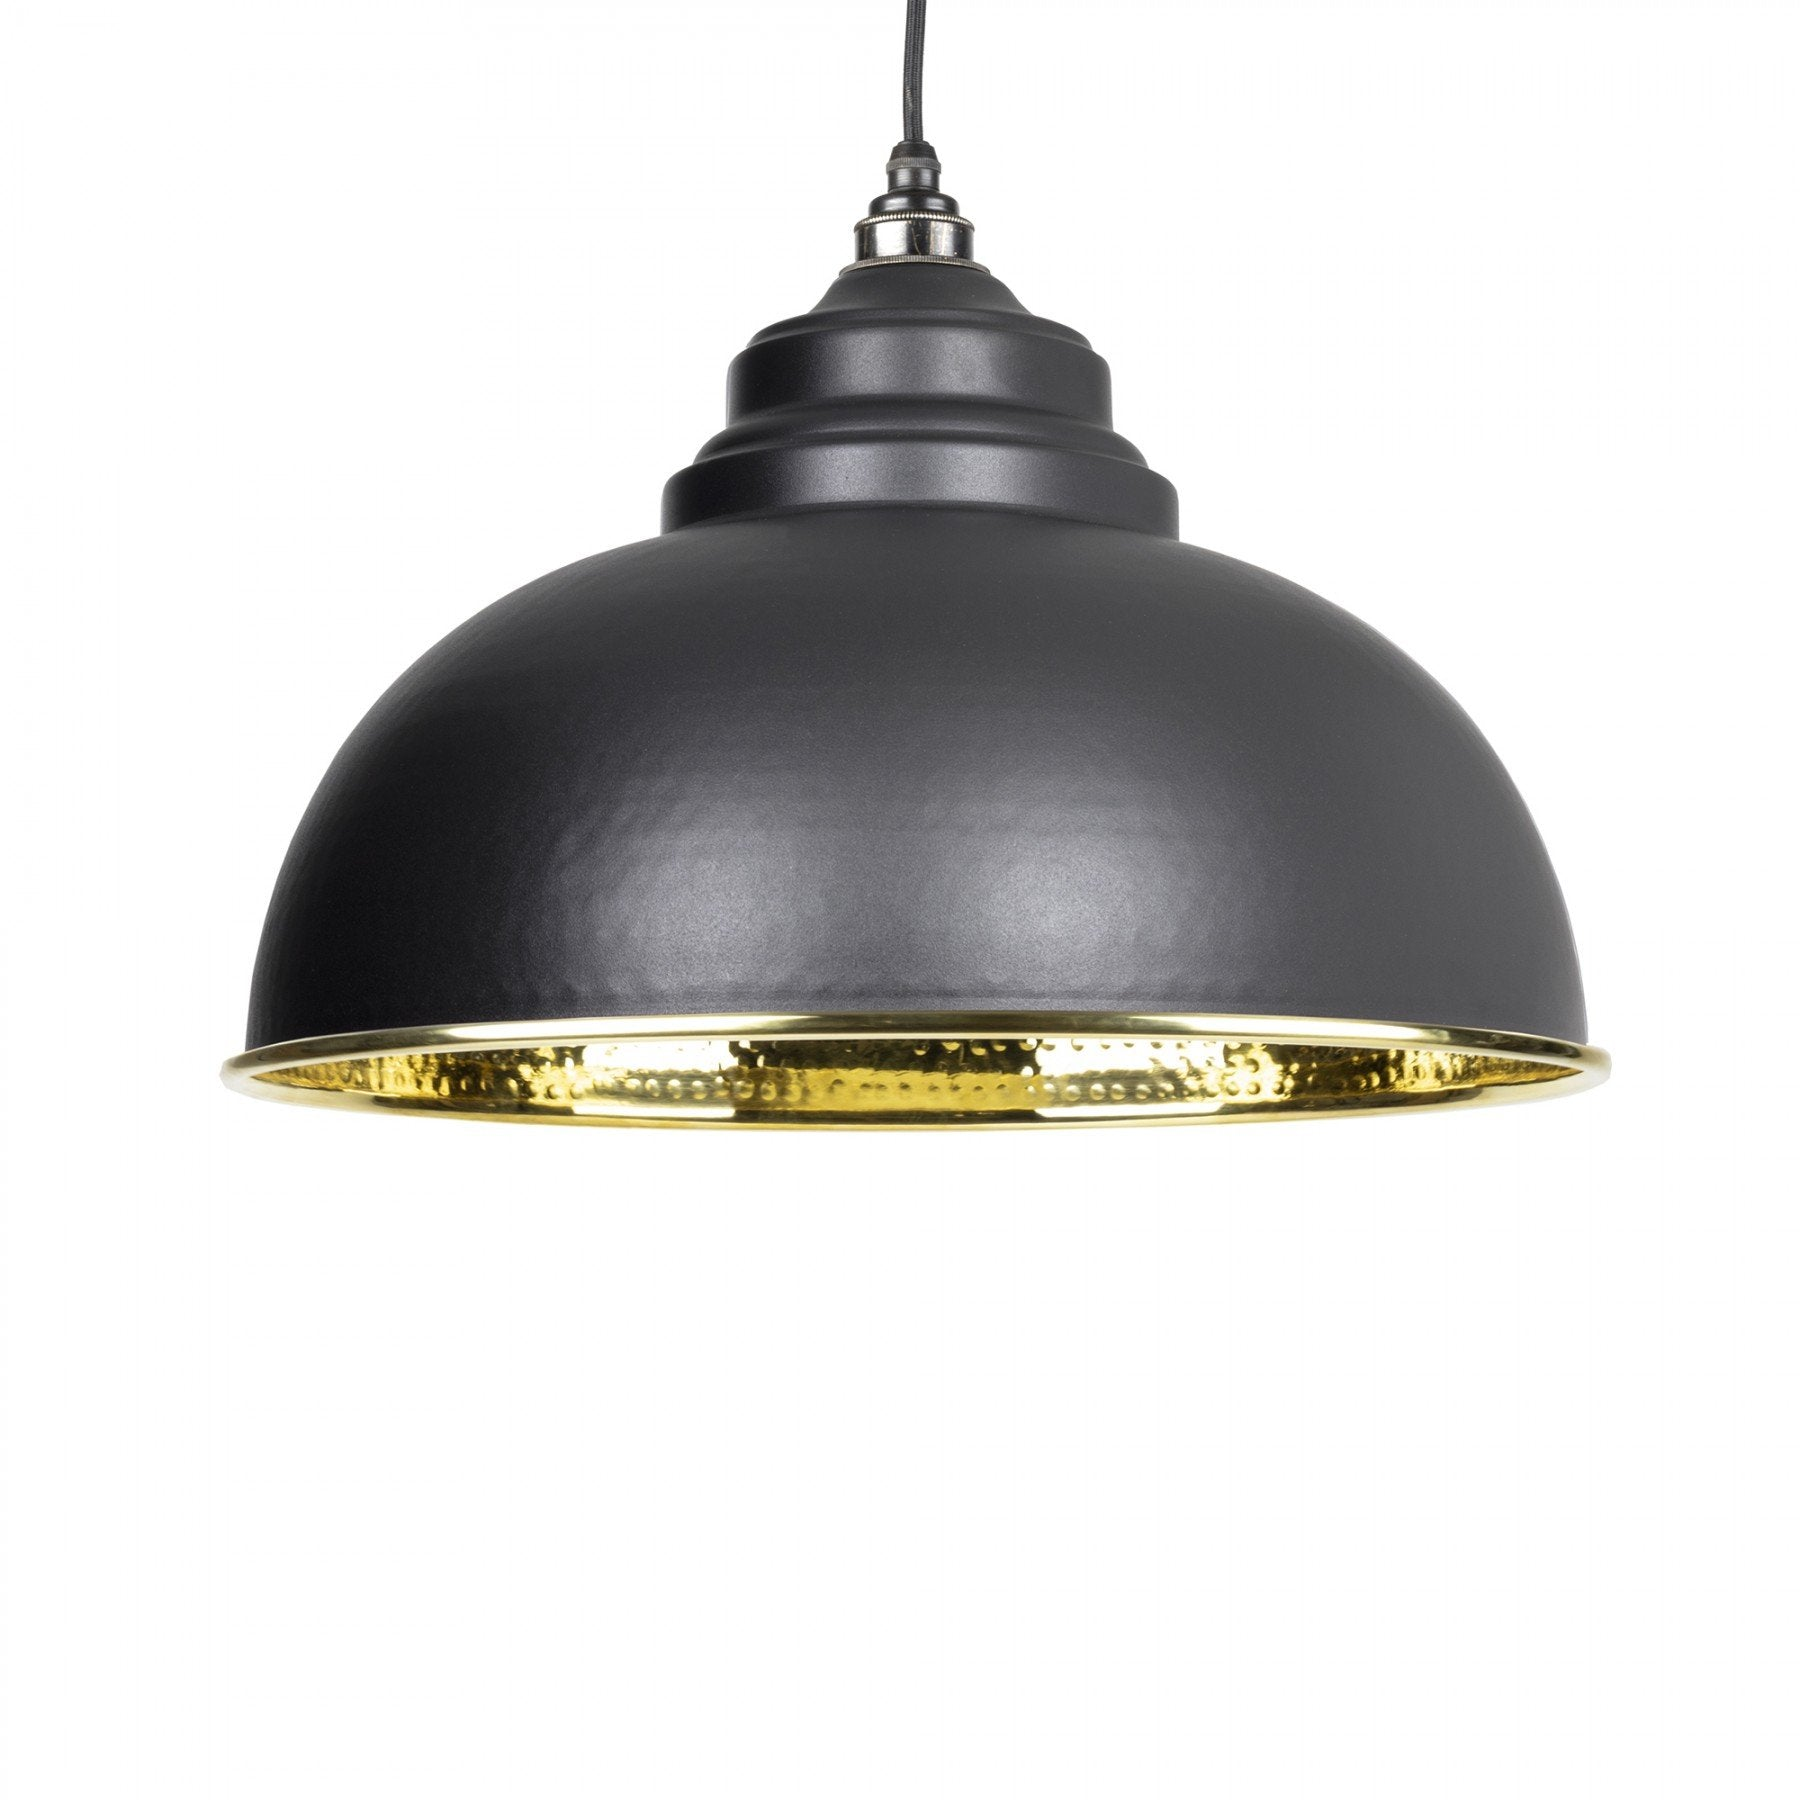 From The Anvil Black & Hammered Brass Interior Harborne Pendant - No.42 Interiors